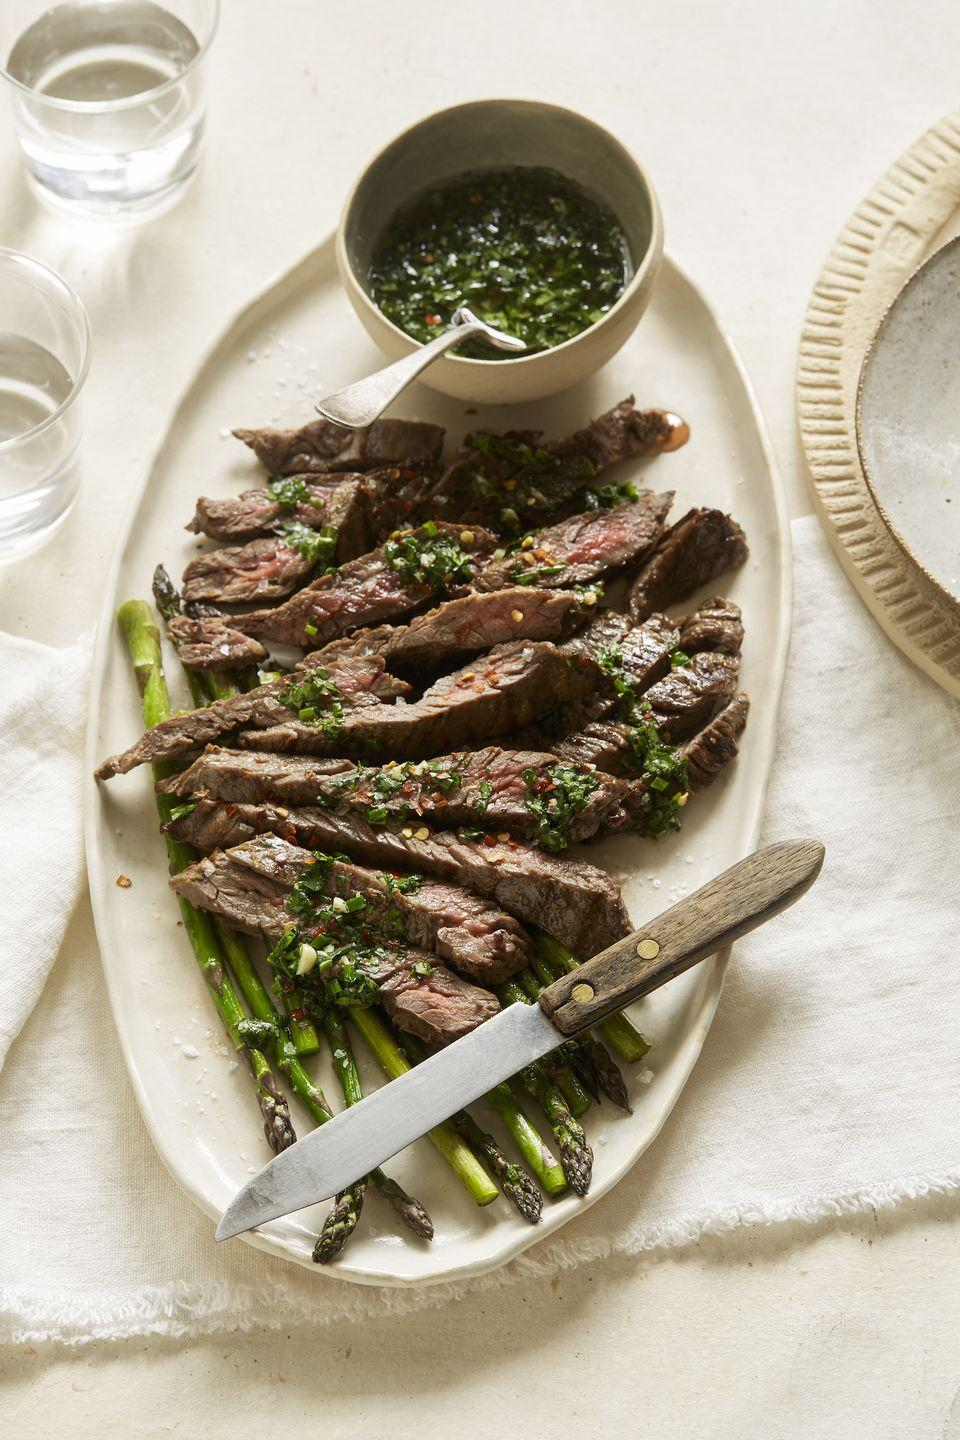 "<p>Show off your grill skills.</p><p>Get the recipe from <a href=""https://www.delish.com/cooking/recipe-ideas/recipes/a53320/cilantro-lime-chimichurri-grilled-steak-recipe/"" rel=""nofollow noopener"" target=""_blank"" data-ylk=""slk:Delish"" class=""link rapid-noclick-resp"">Delish</a>.</p>"